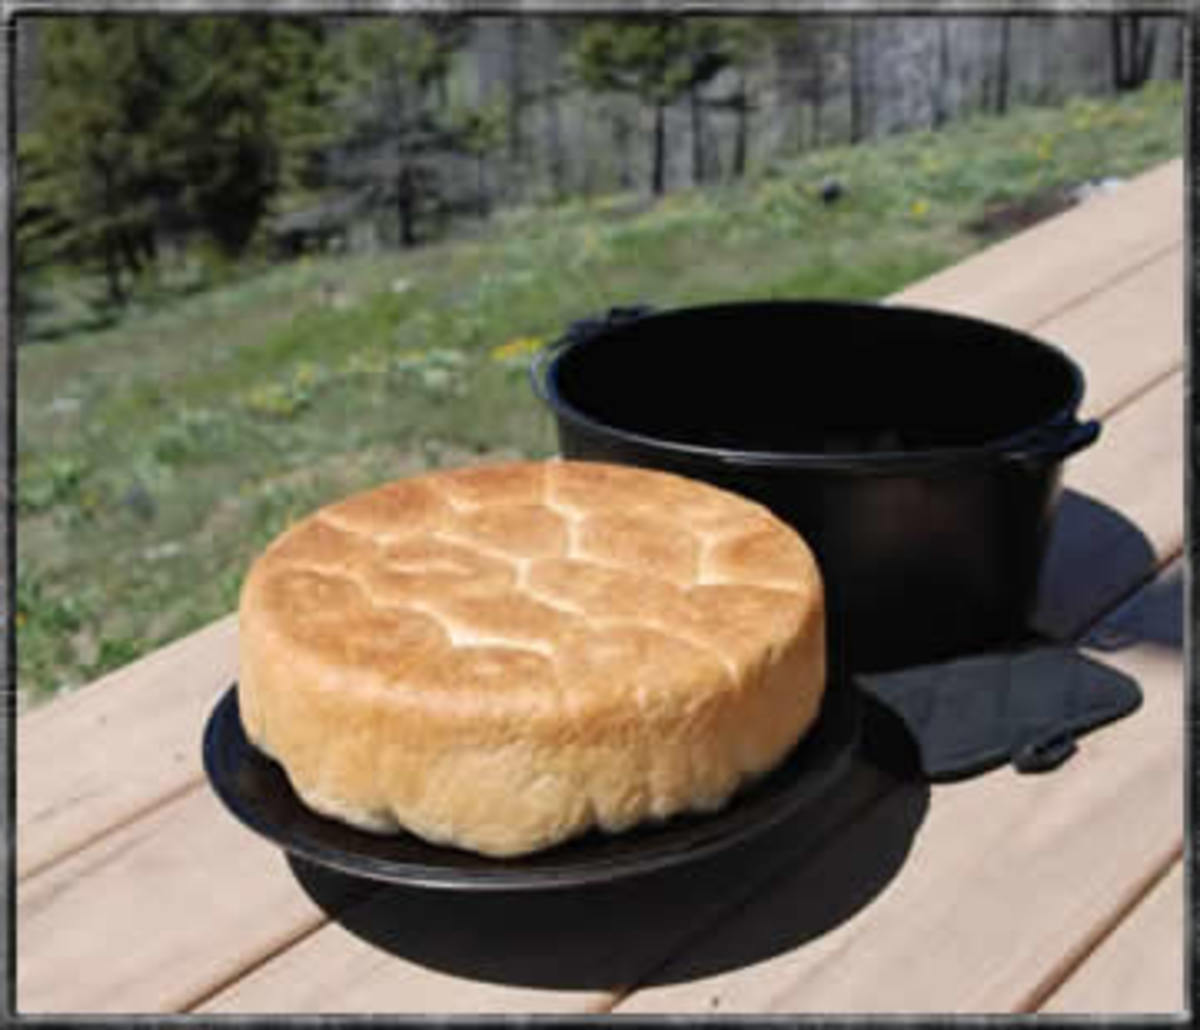 Campfire baking with a cast iron camping Dutch oven